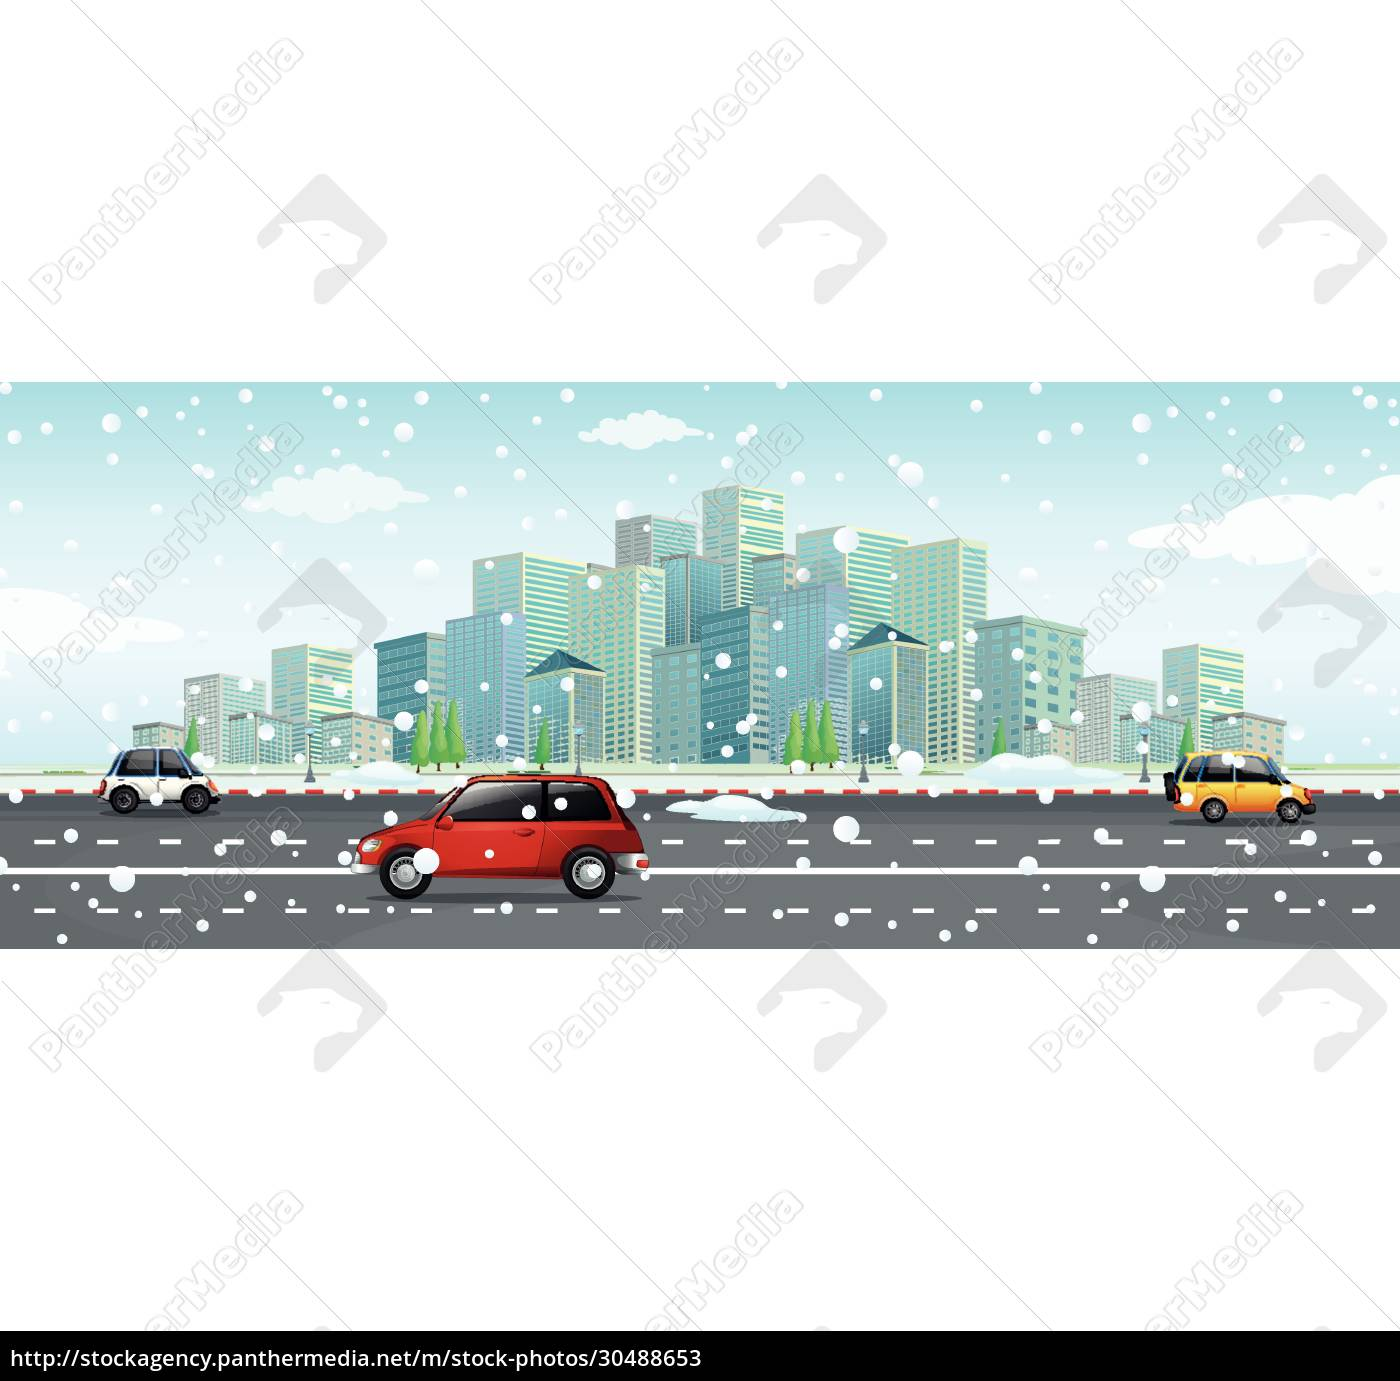 city, scene, with, snow, falling, on - 30488653